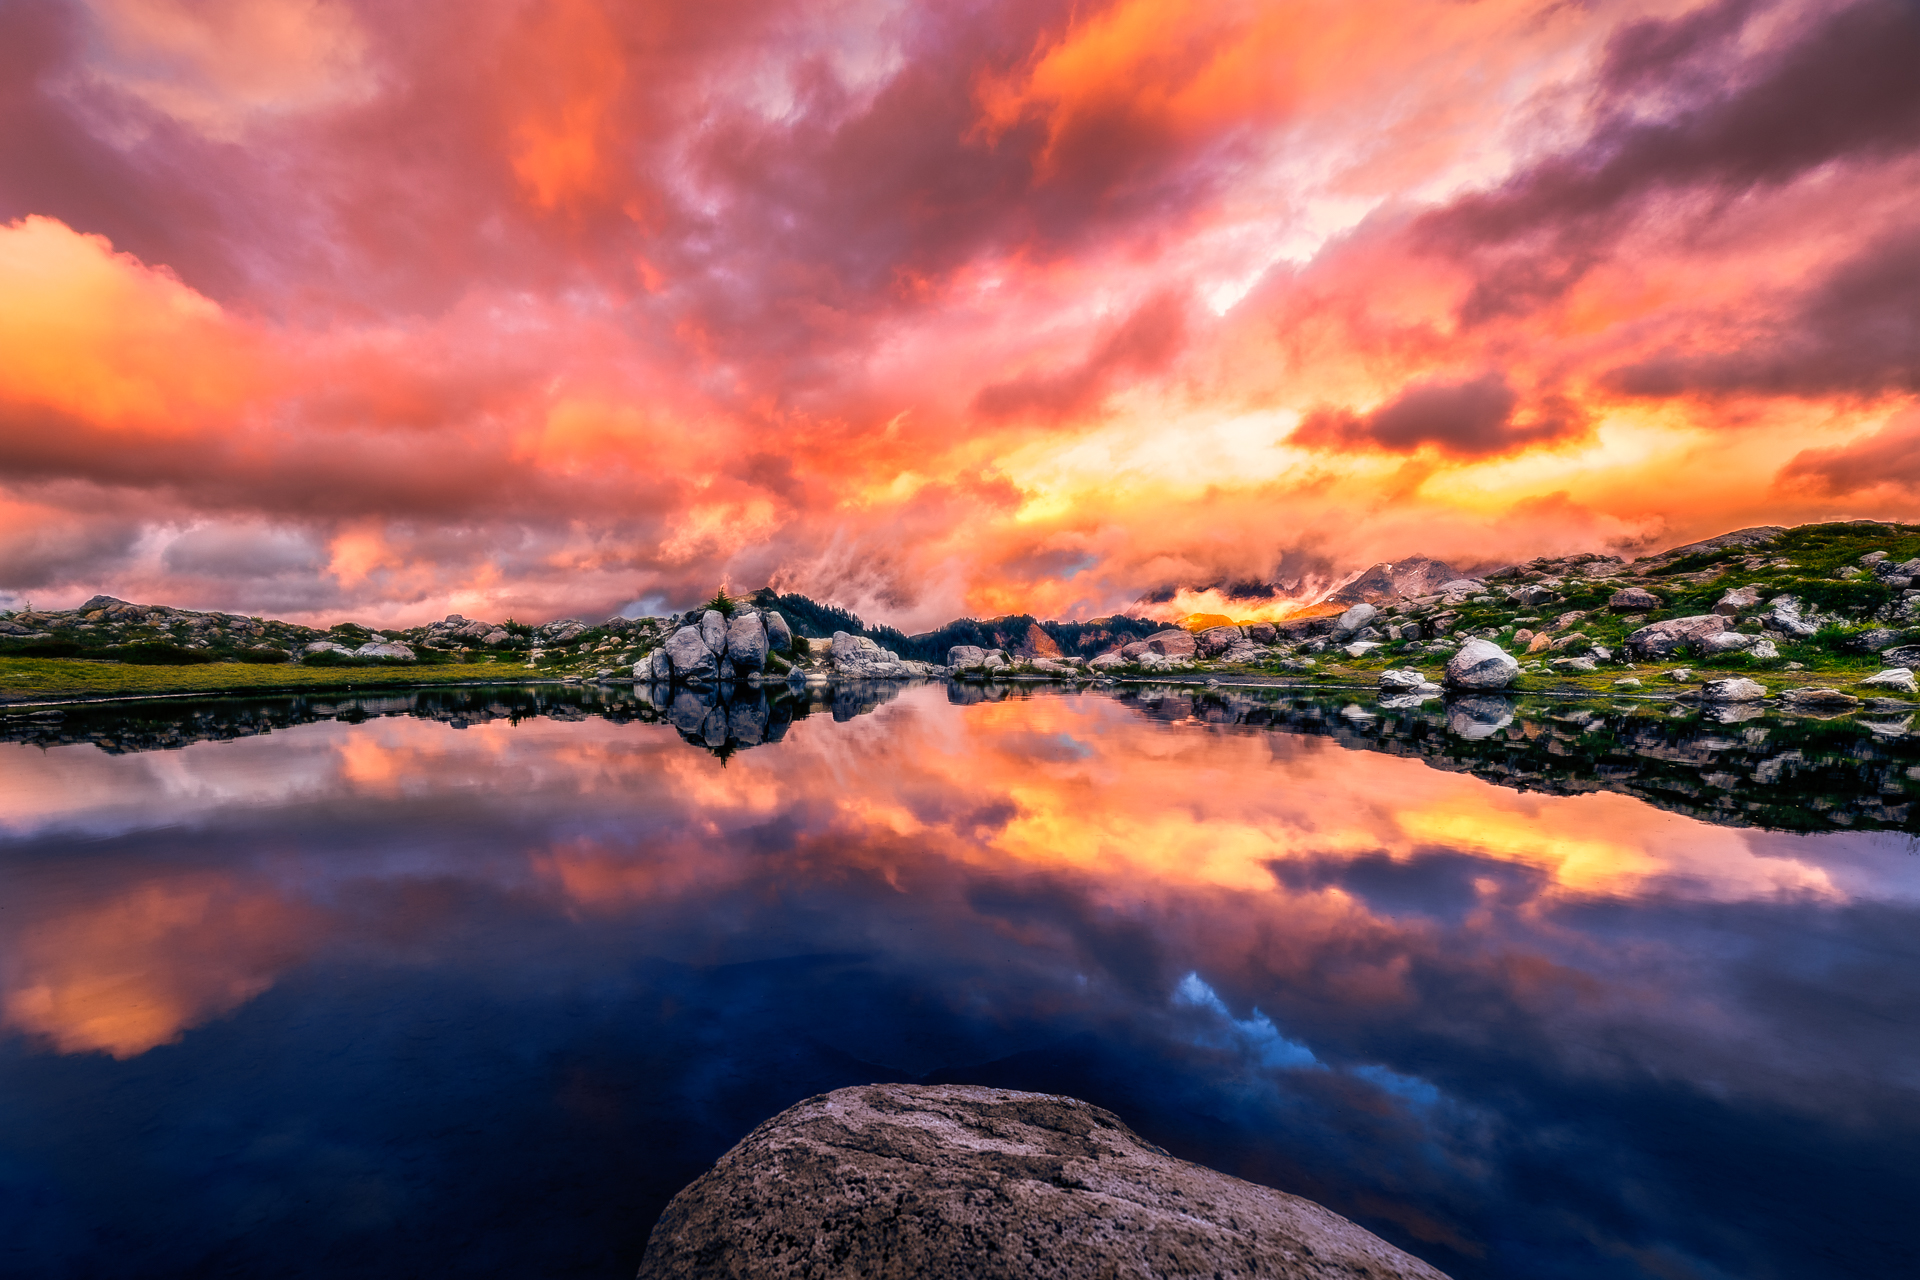 Landscape Photography Form Around The Pacific Northwest